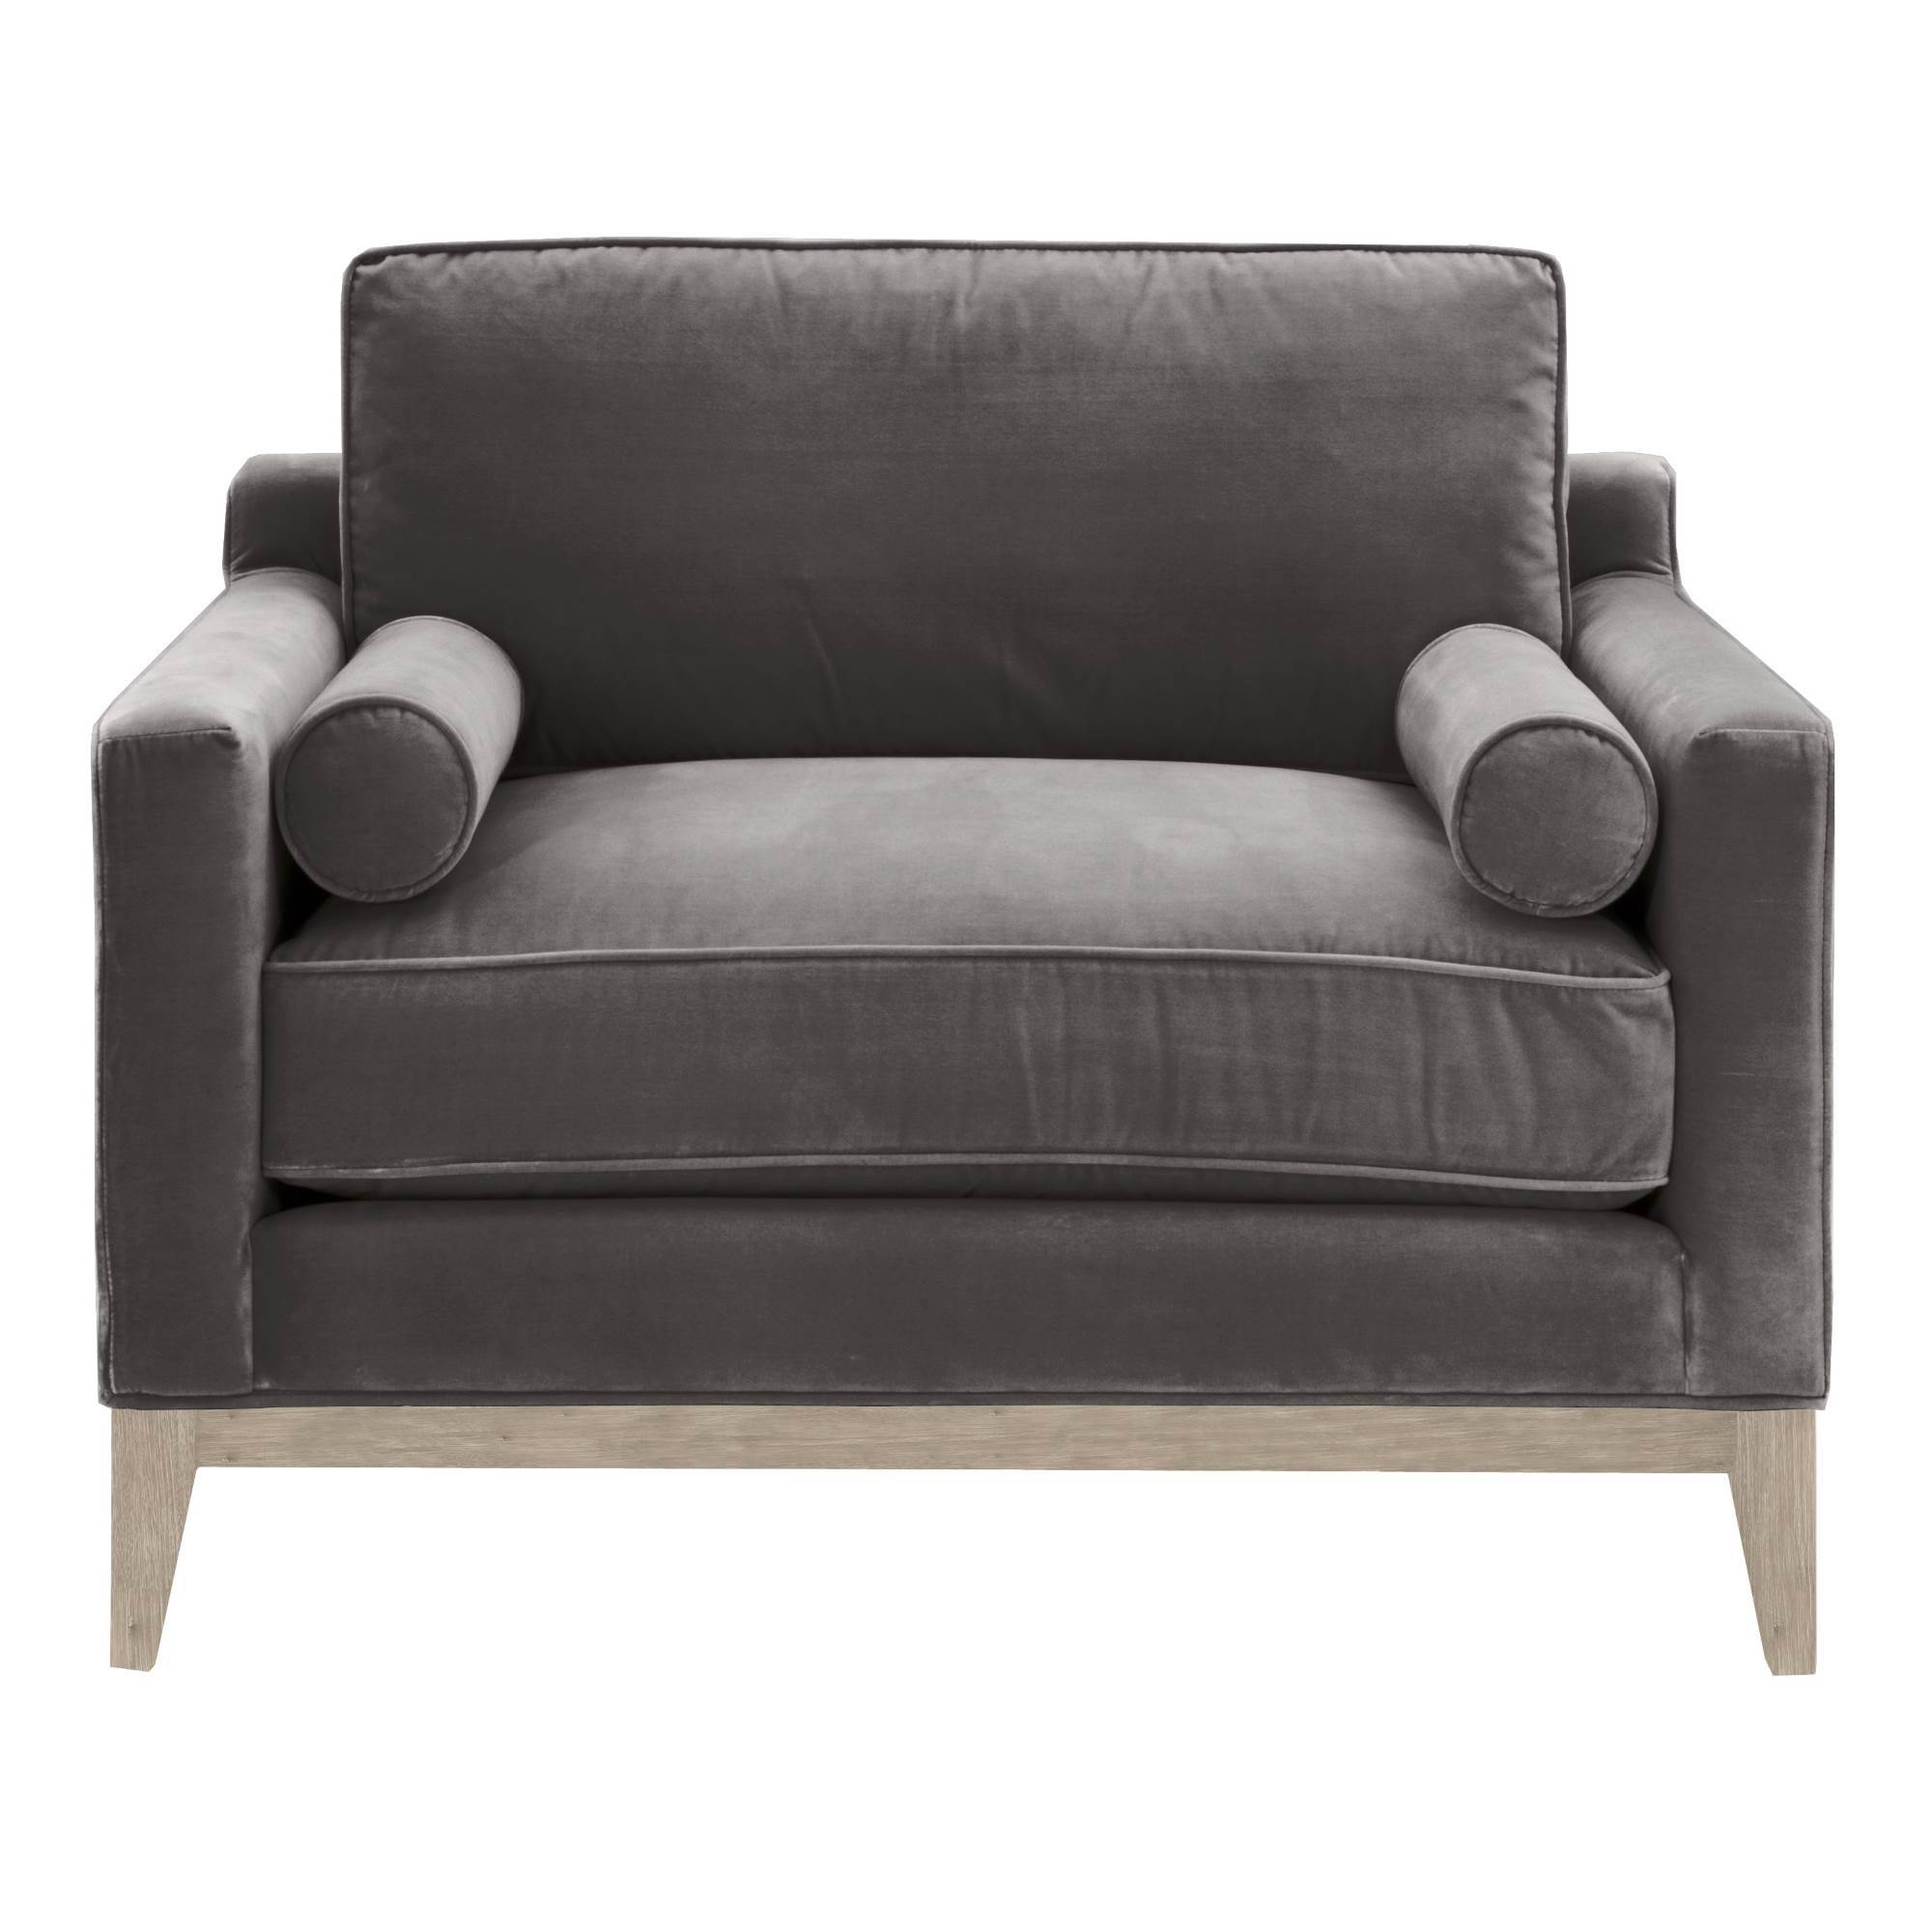 Parker Post Modern Sofa Chair in Natural Gray Oak